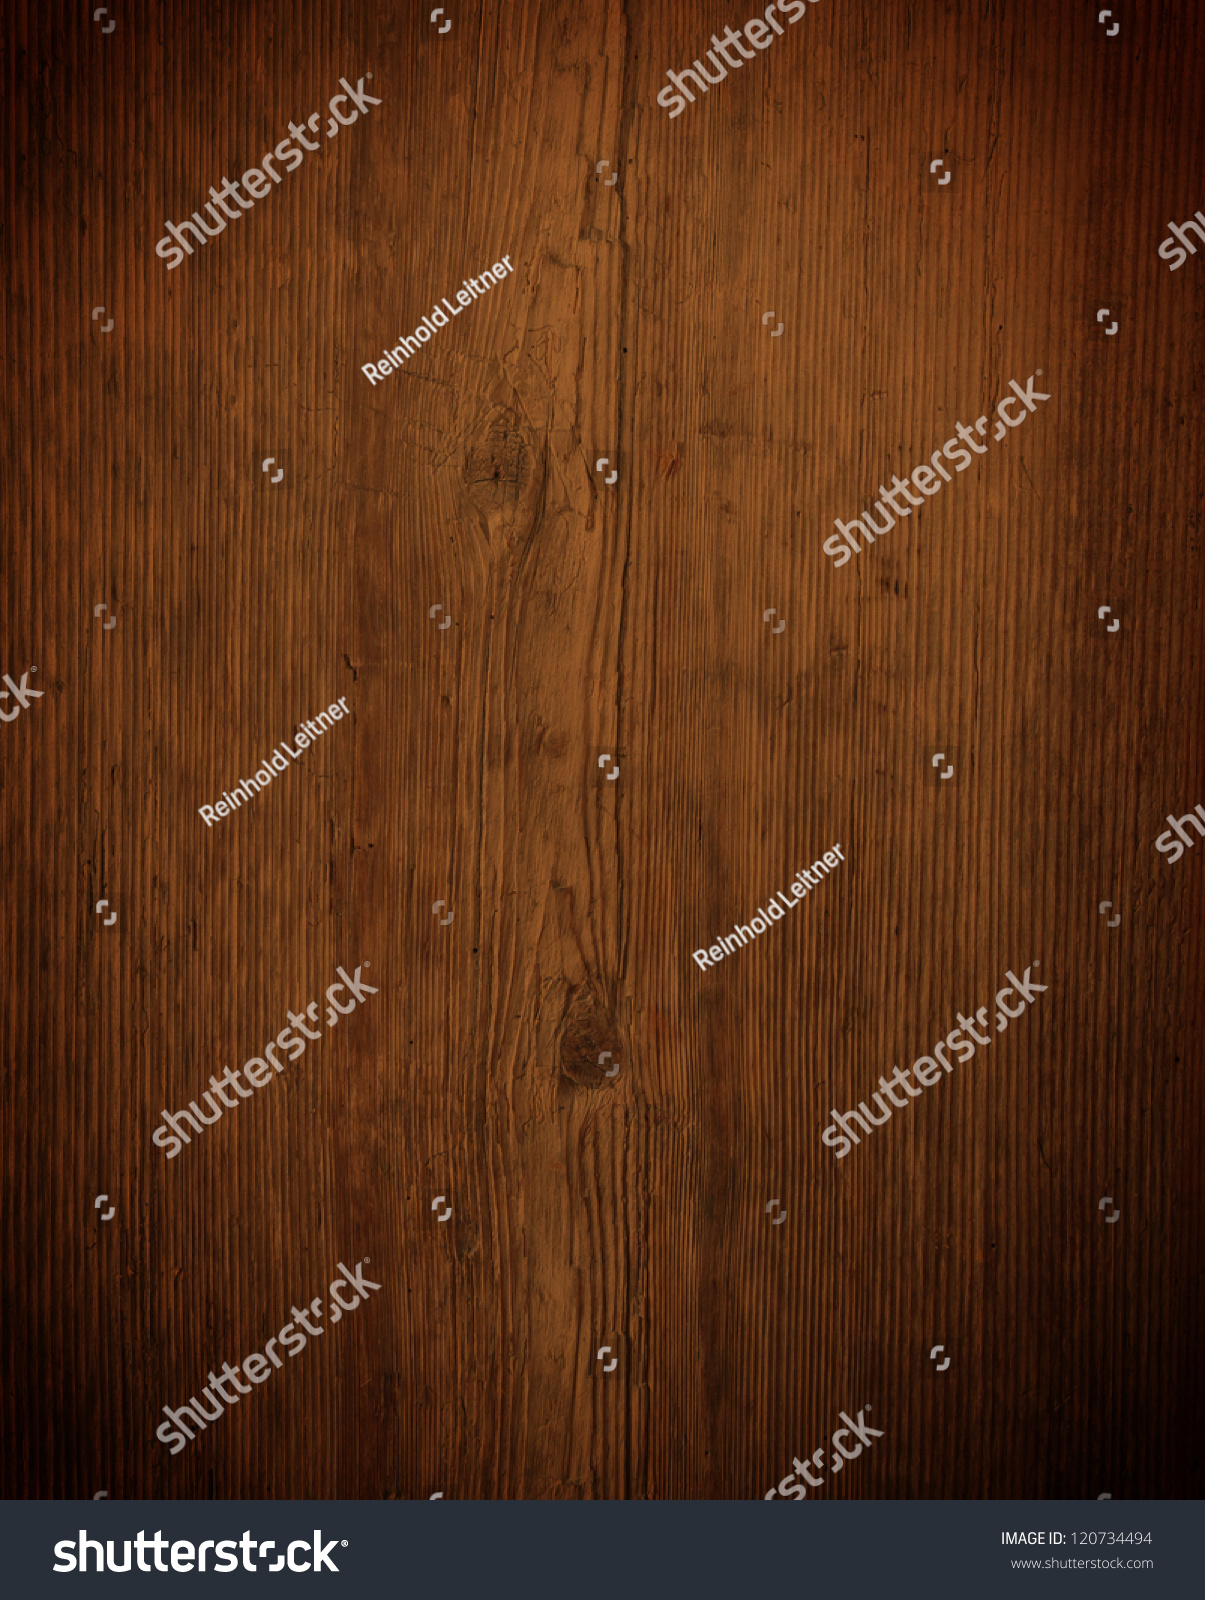 Wooden Texture Wood Grain Stock Photo 120734494 - Shutterstock